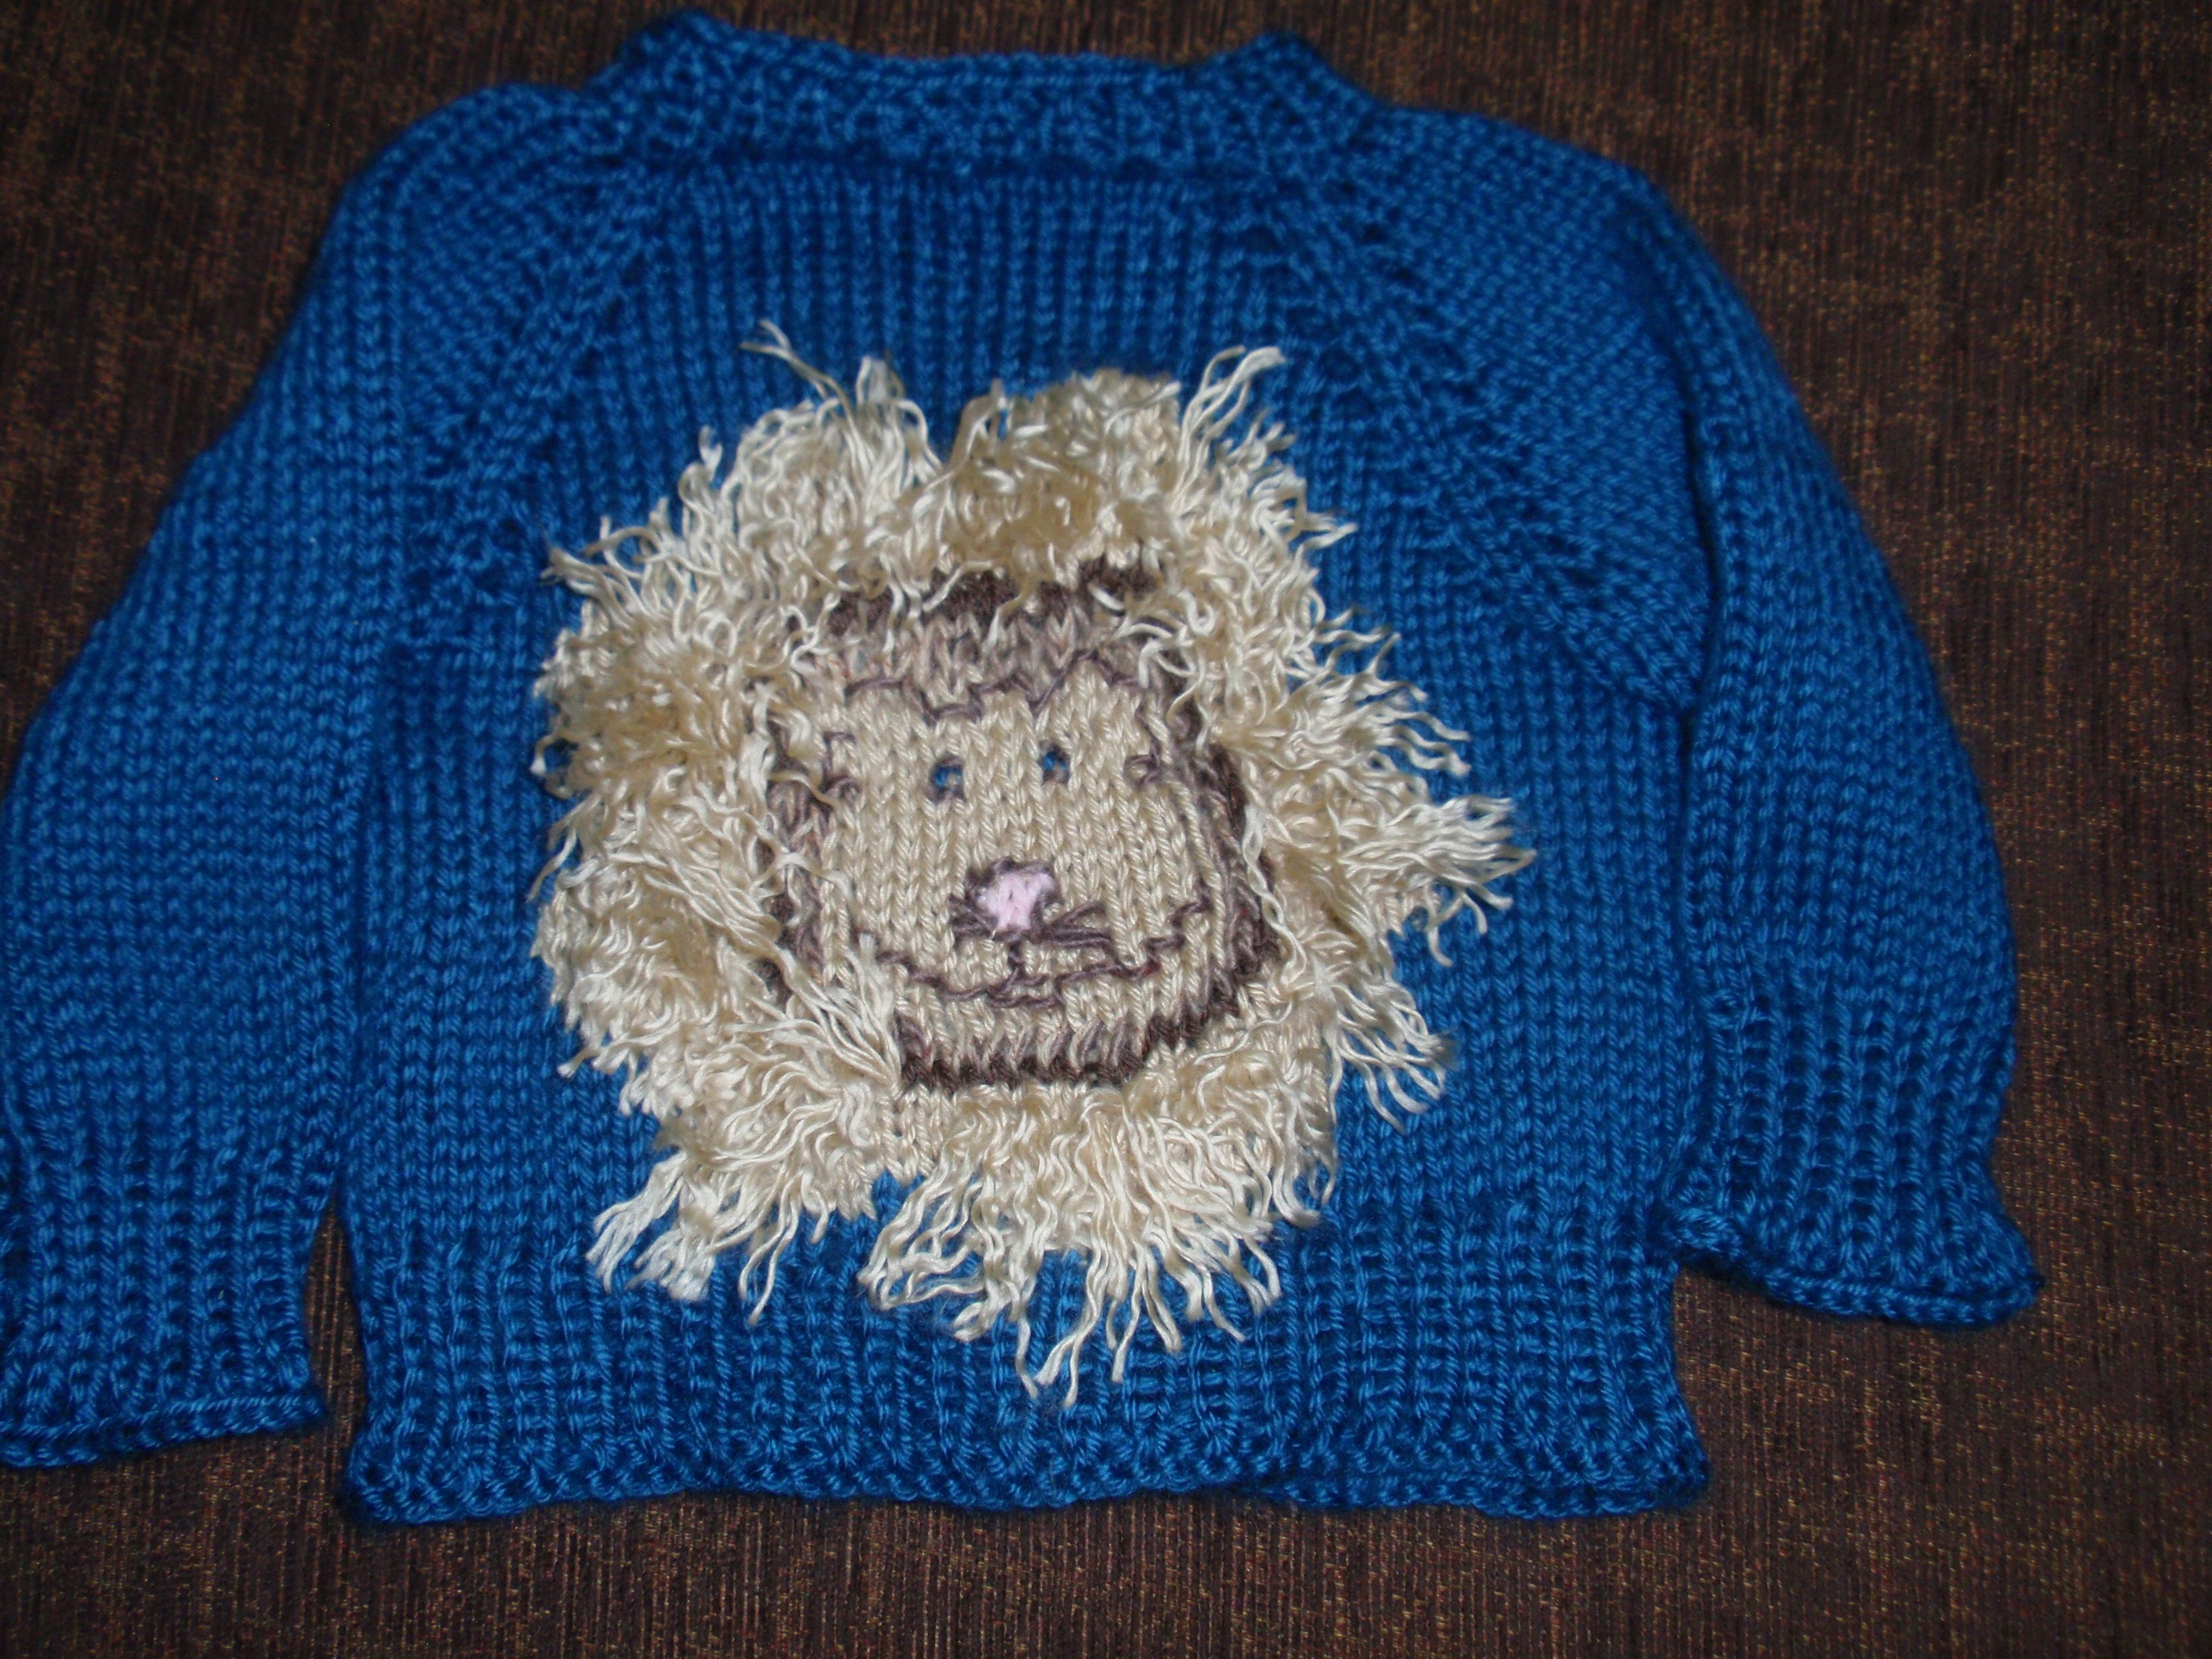 Roar baby sweater My Knitting Projects Pinterest